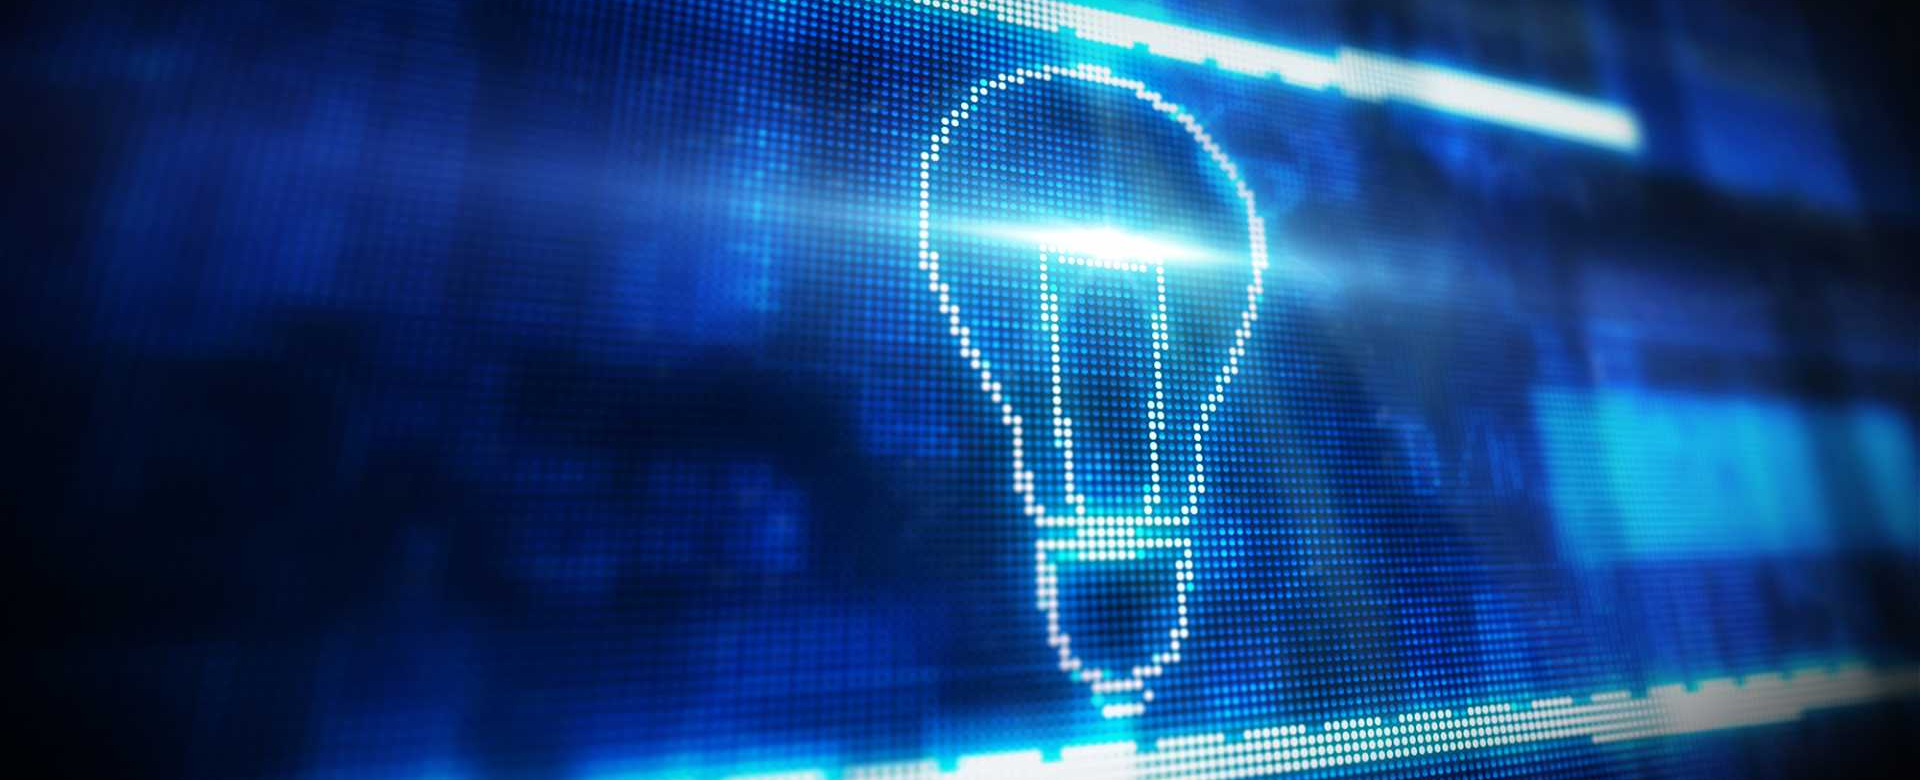 CROP - intellectual property digital economy innovation light bulb - image courtesy of Depositphotos